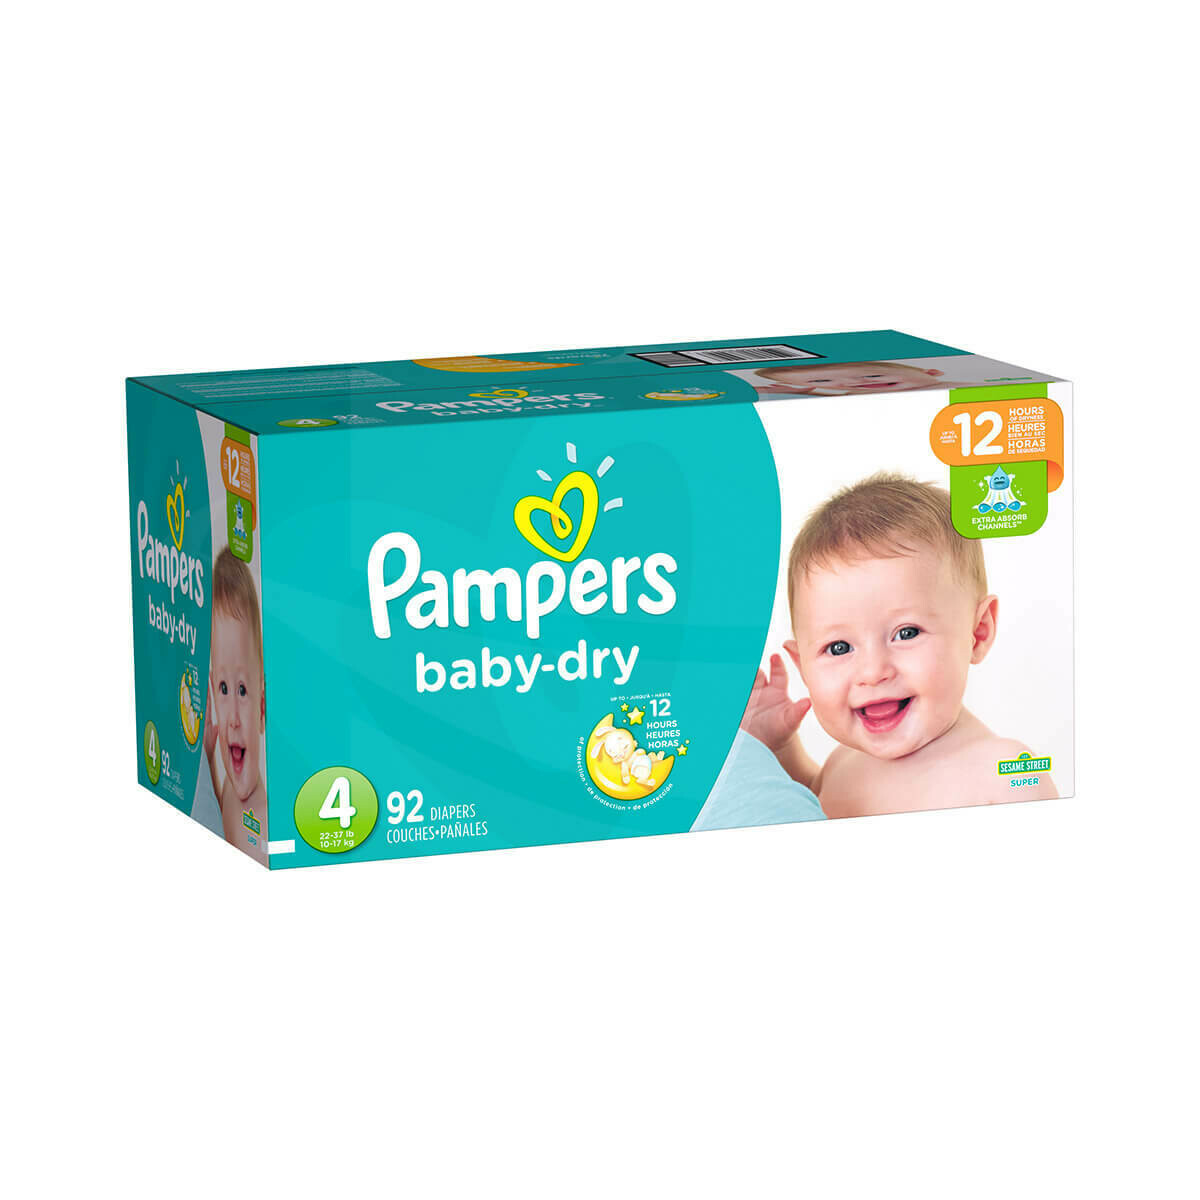 Pampers talla 4 (92 unidades)